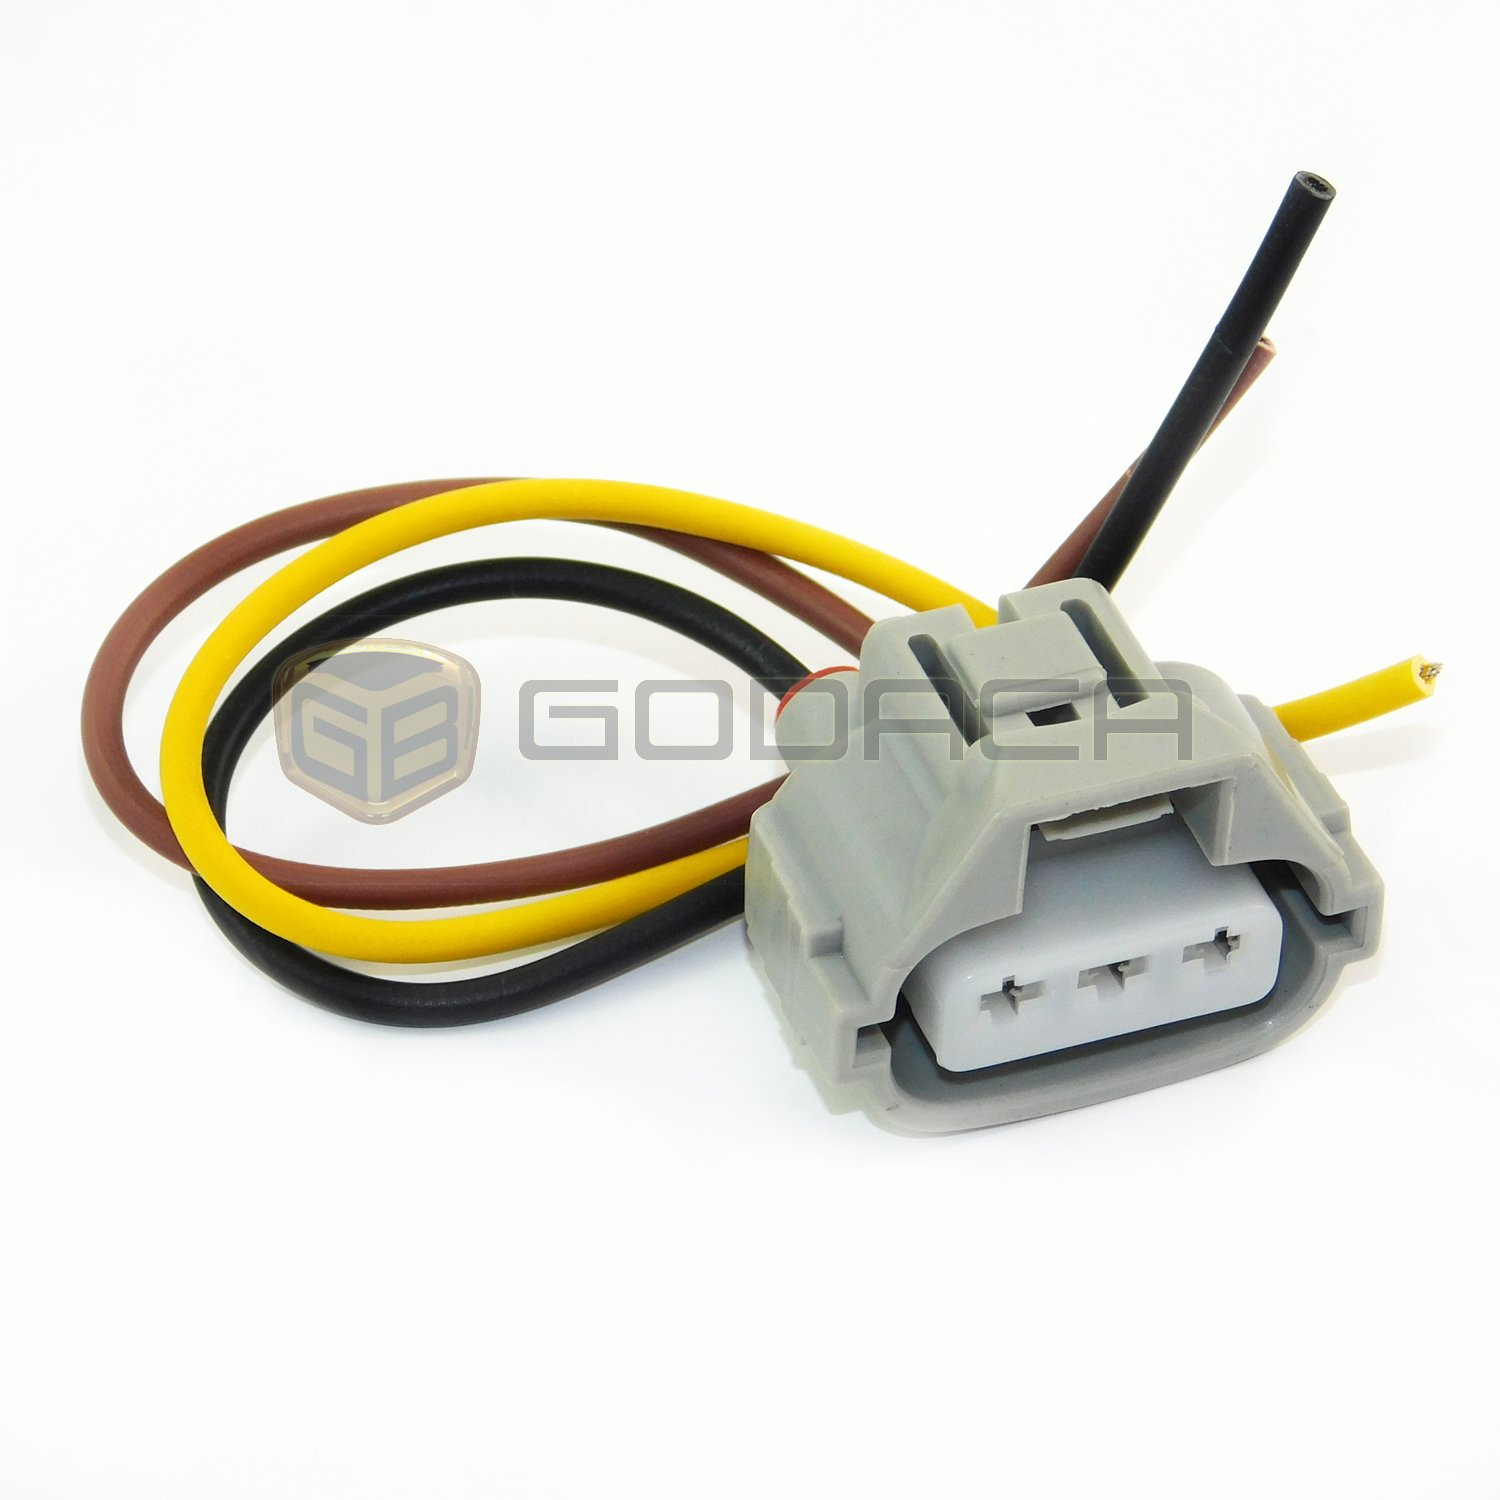 1x Connector 3-way 3 pin for Turn Light Signal 90980-11020